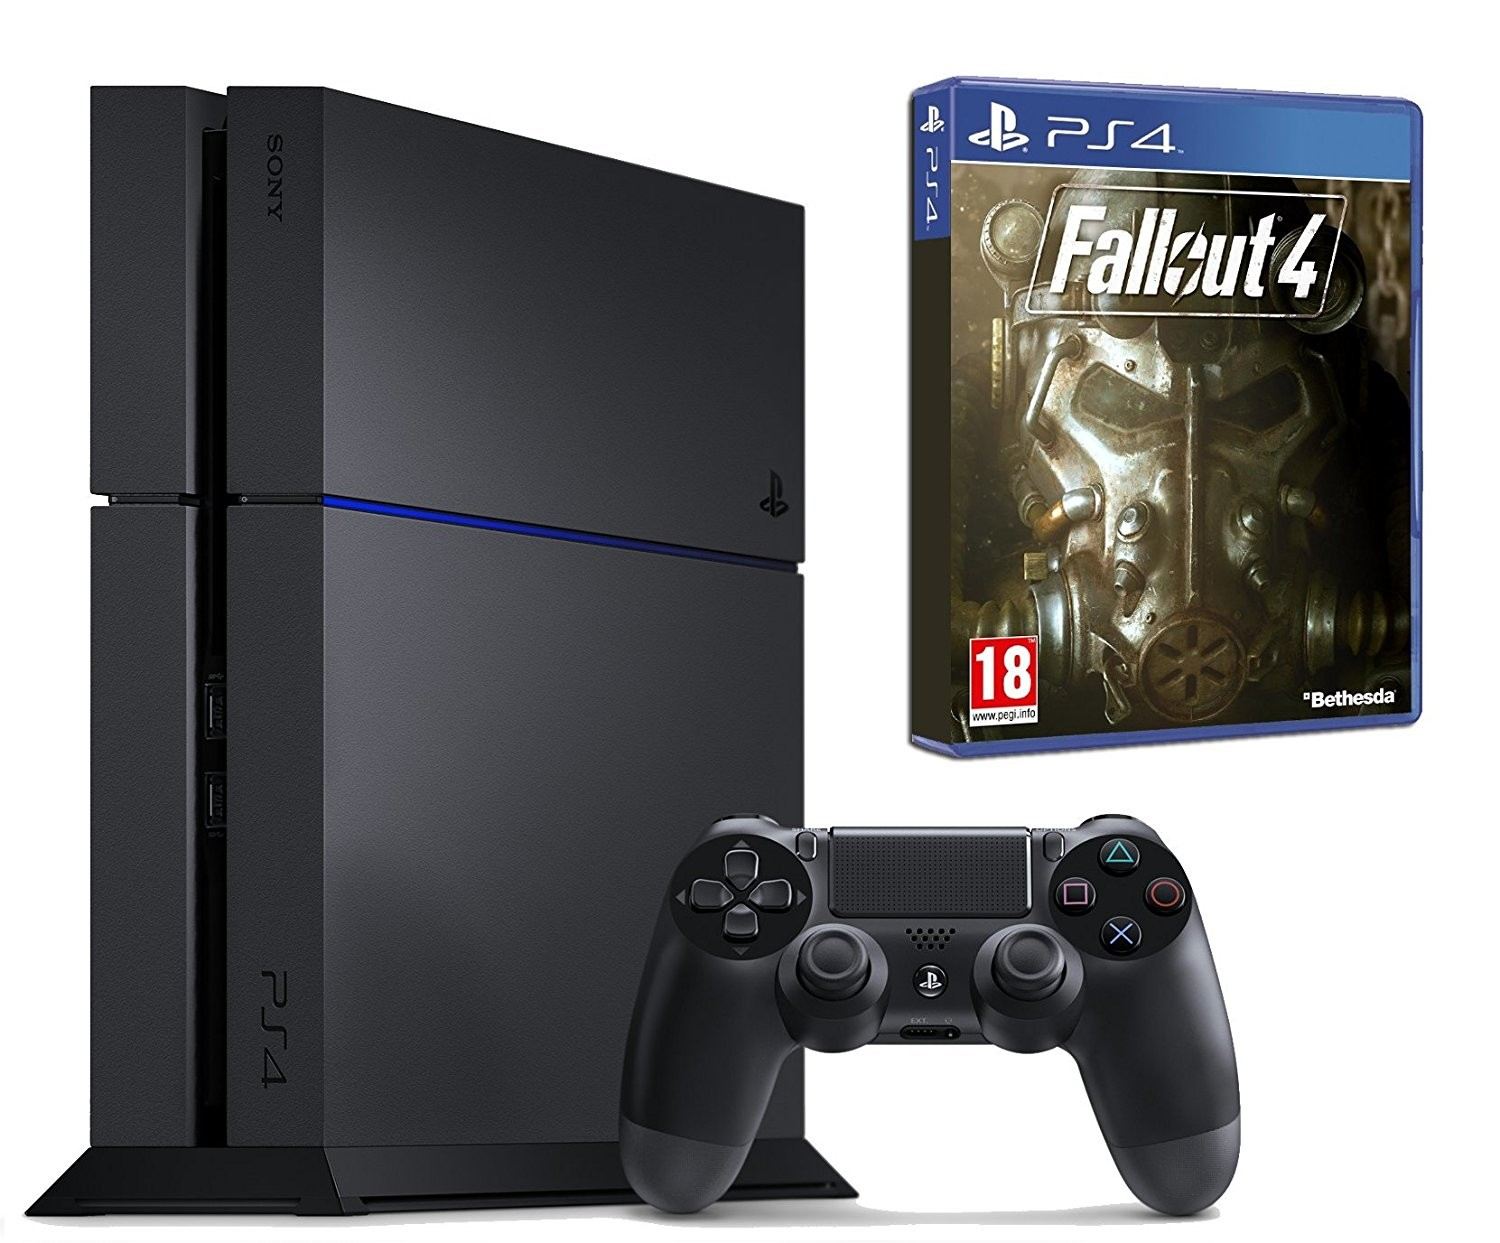 Bon plan console ps4 ch ssis c avec fallout 4 pas cher - What consoles will fallout 4 be on ...